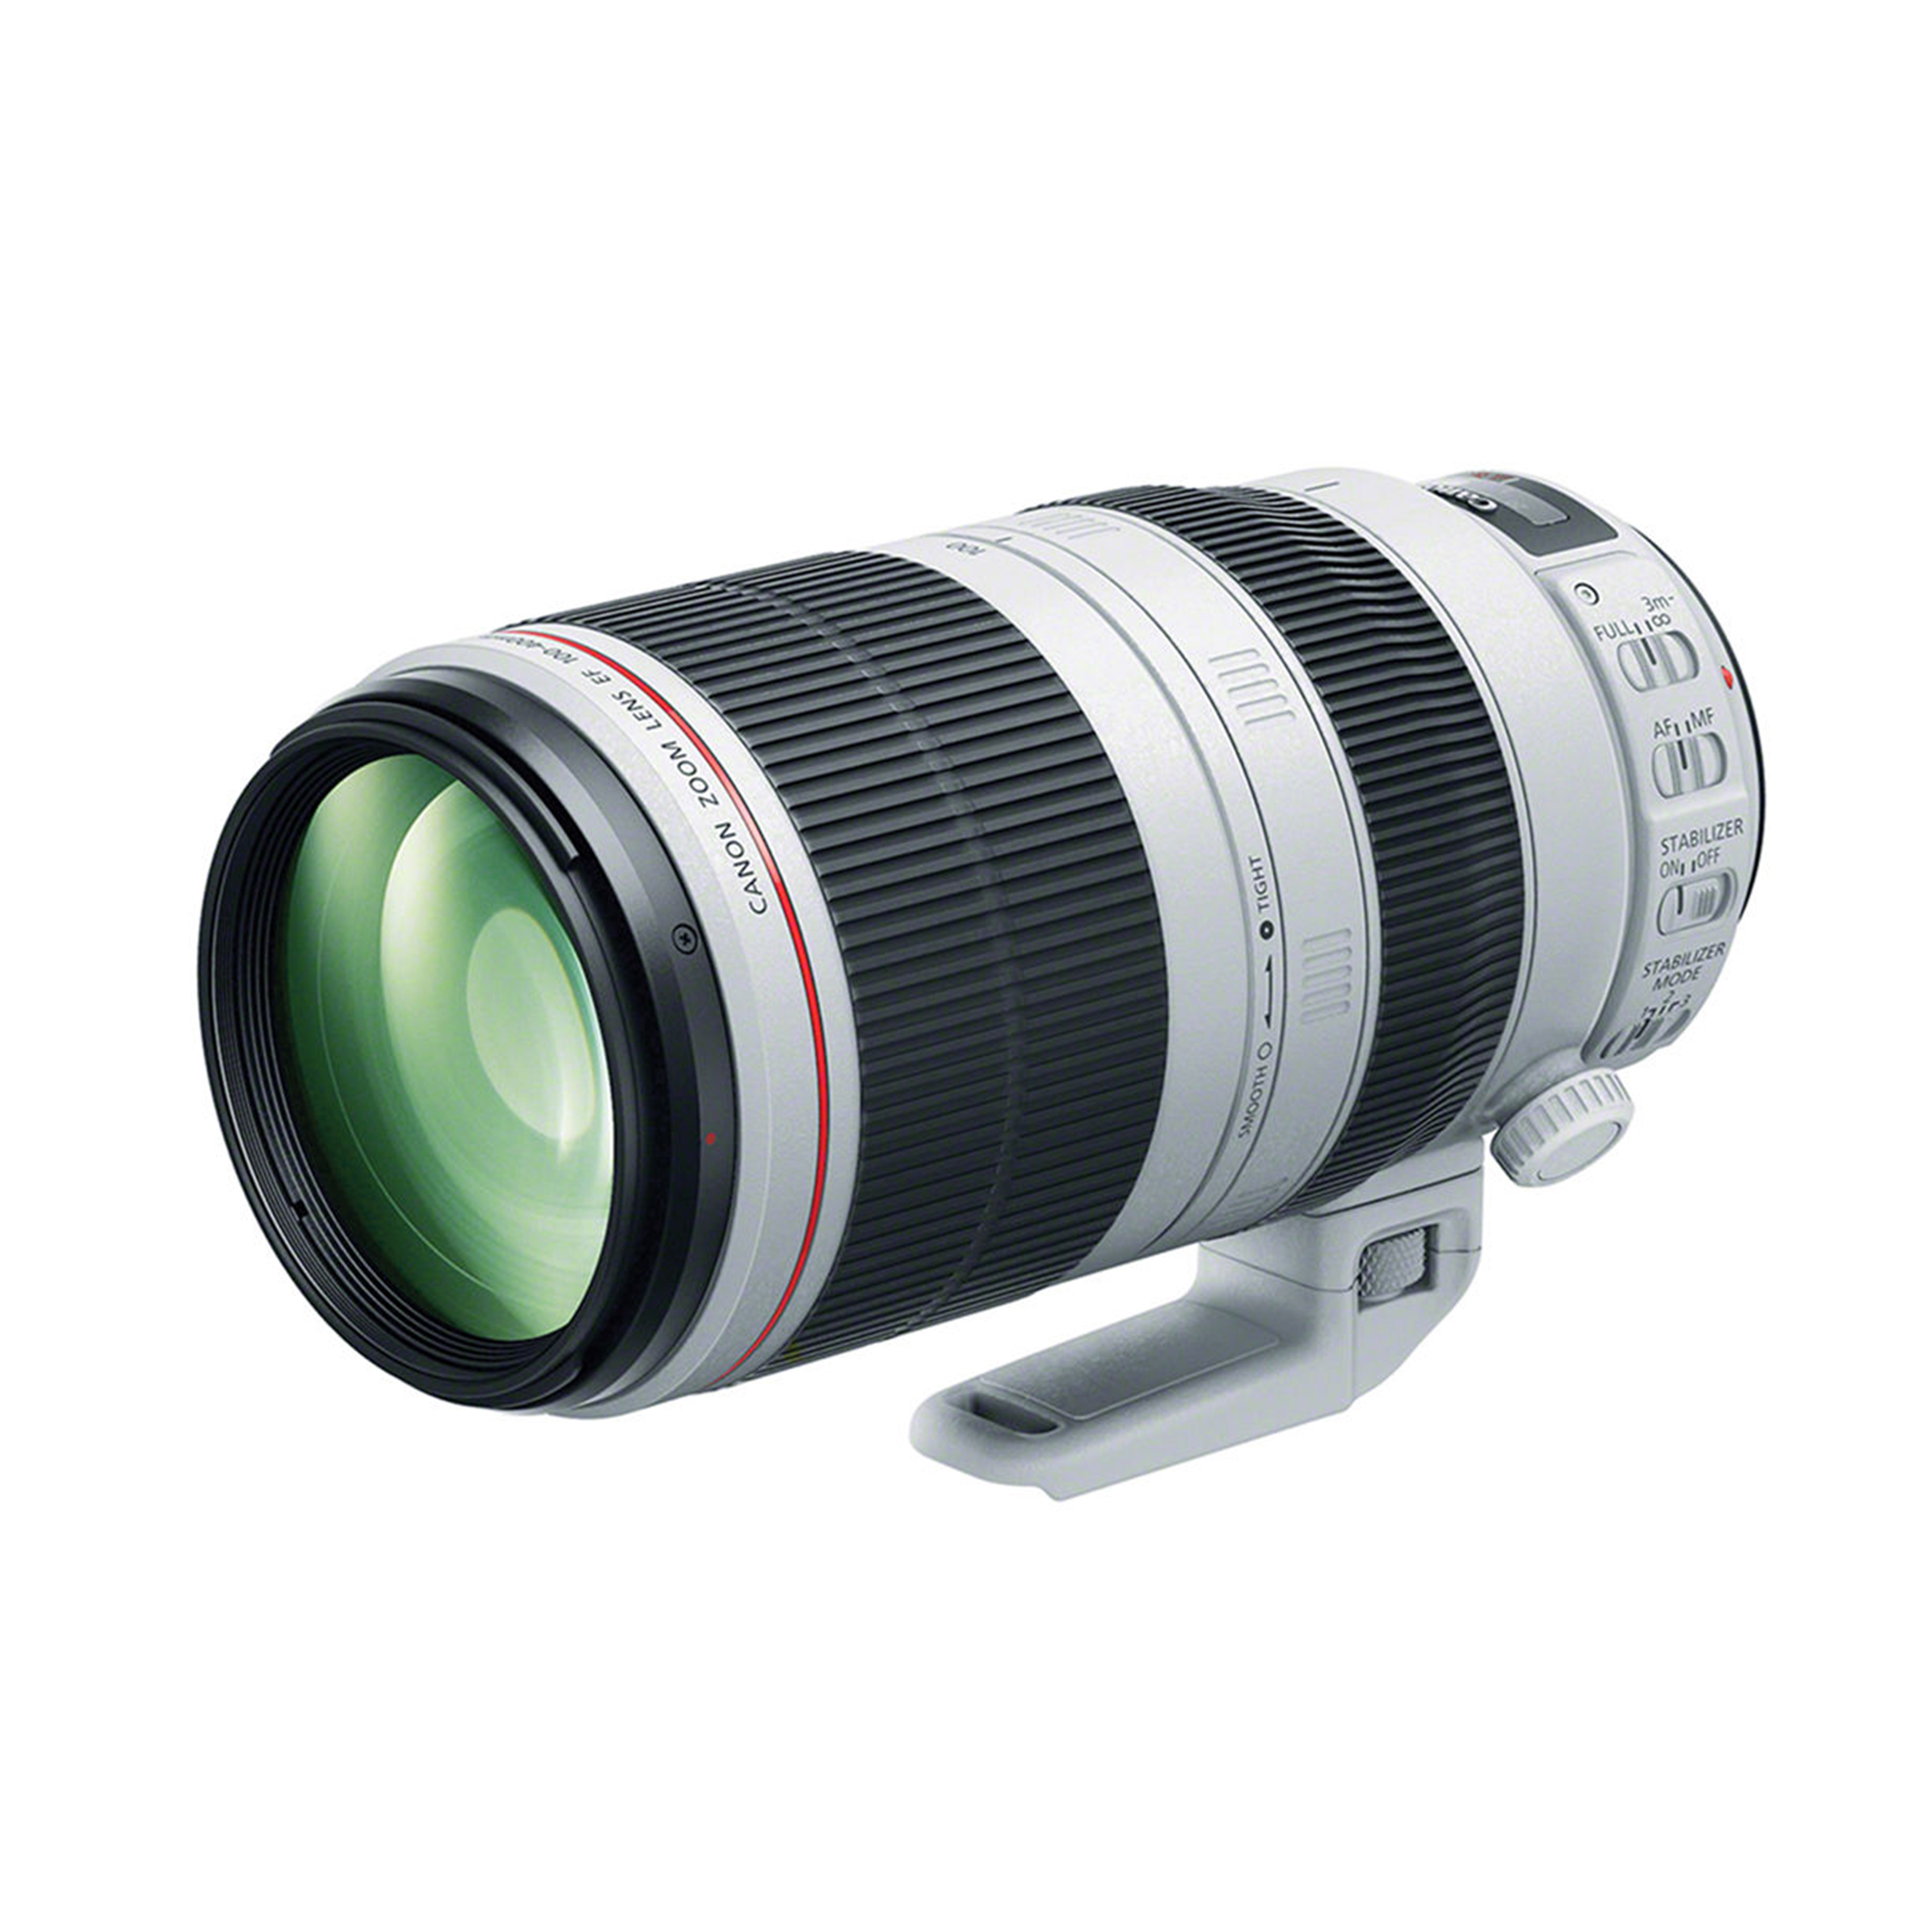 CANON LENS EF 100-400MM F 4.5-5.6 L IS II USM